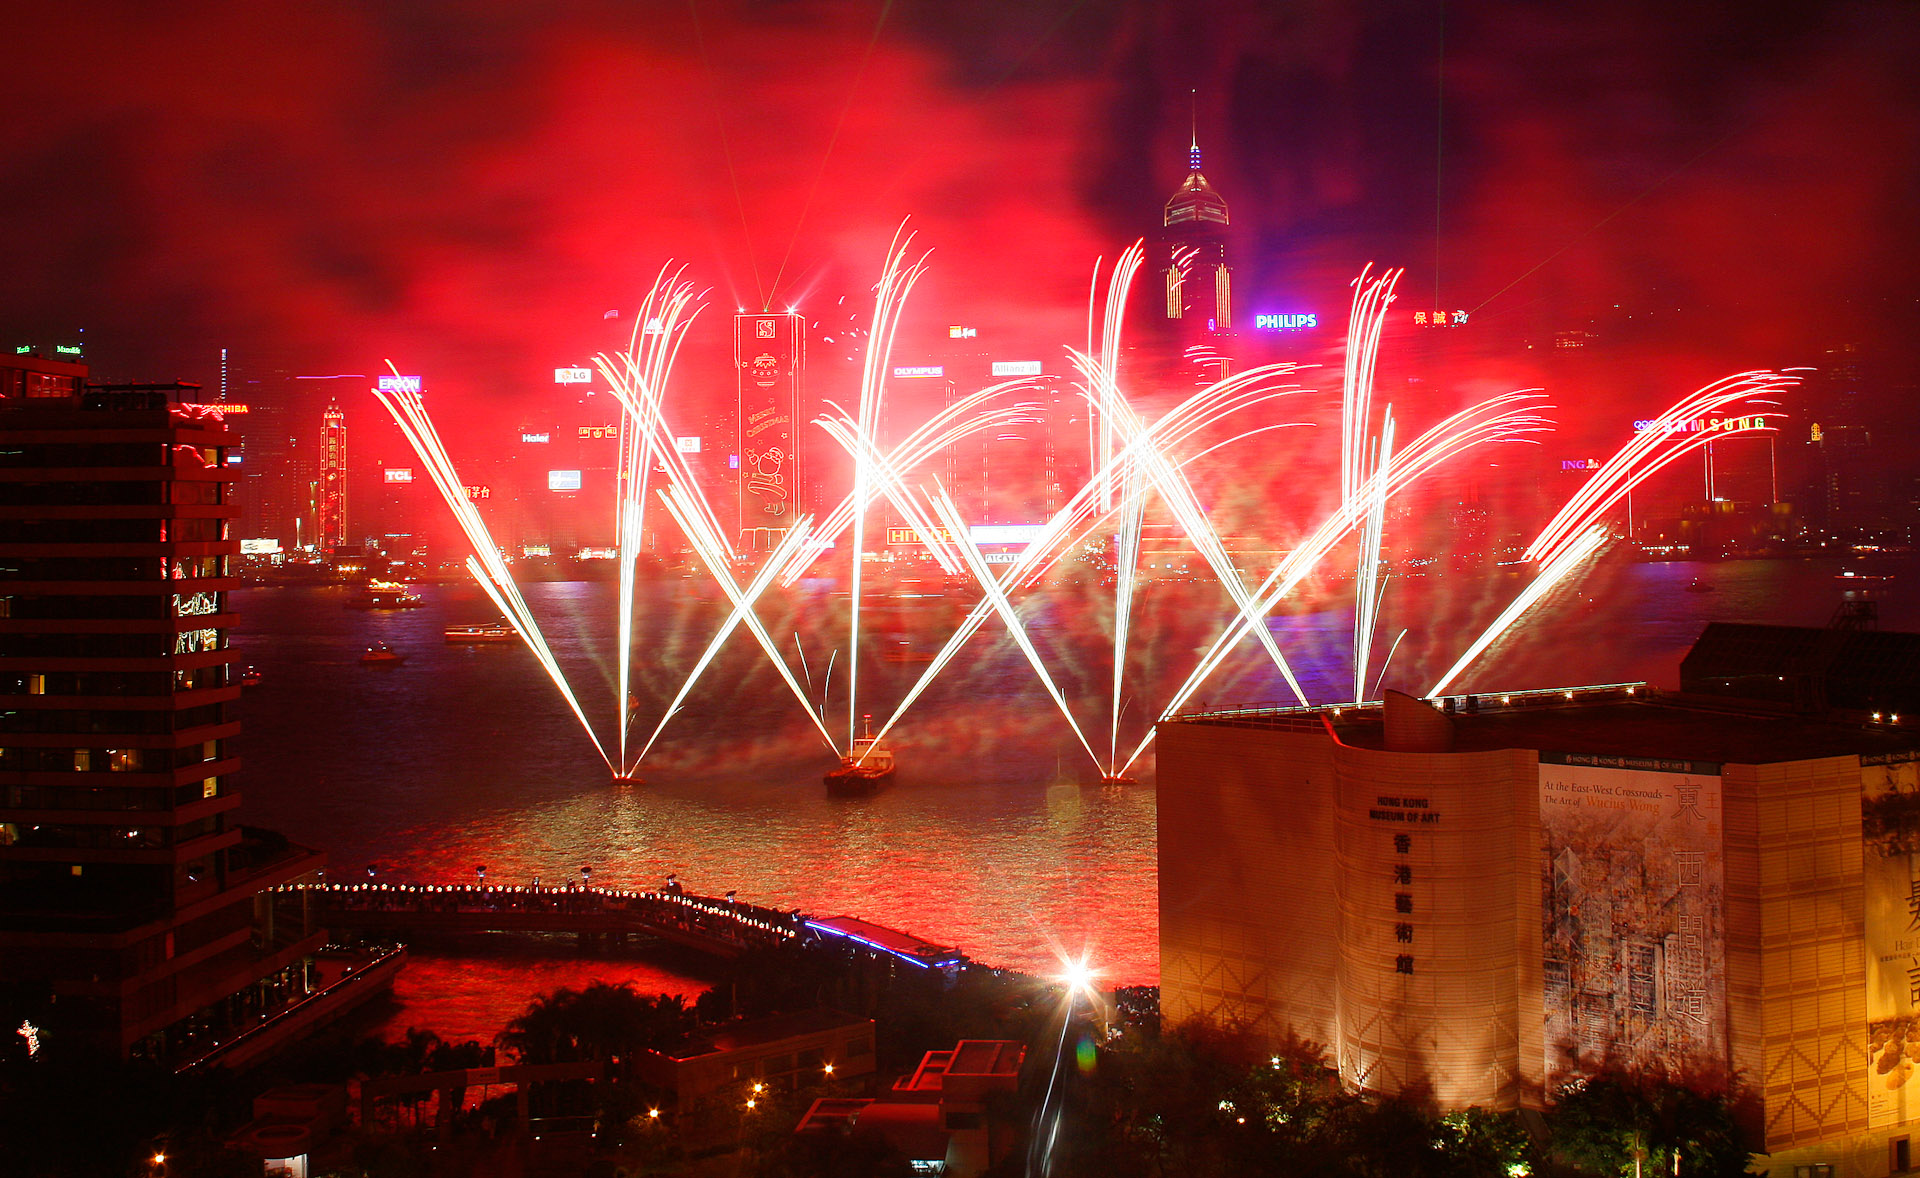 Fireworks over Hong Kong on January 1, 2007 to celebrate New Years day. In the foreground is the Hong Kong Museum of Art. The photograph was shot from the Kowloon.